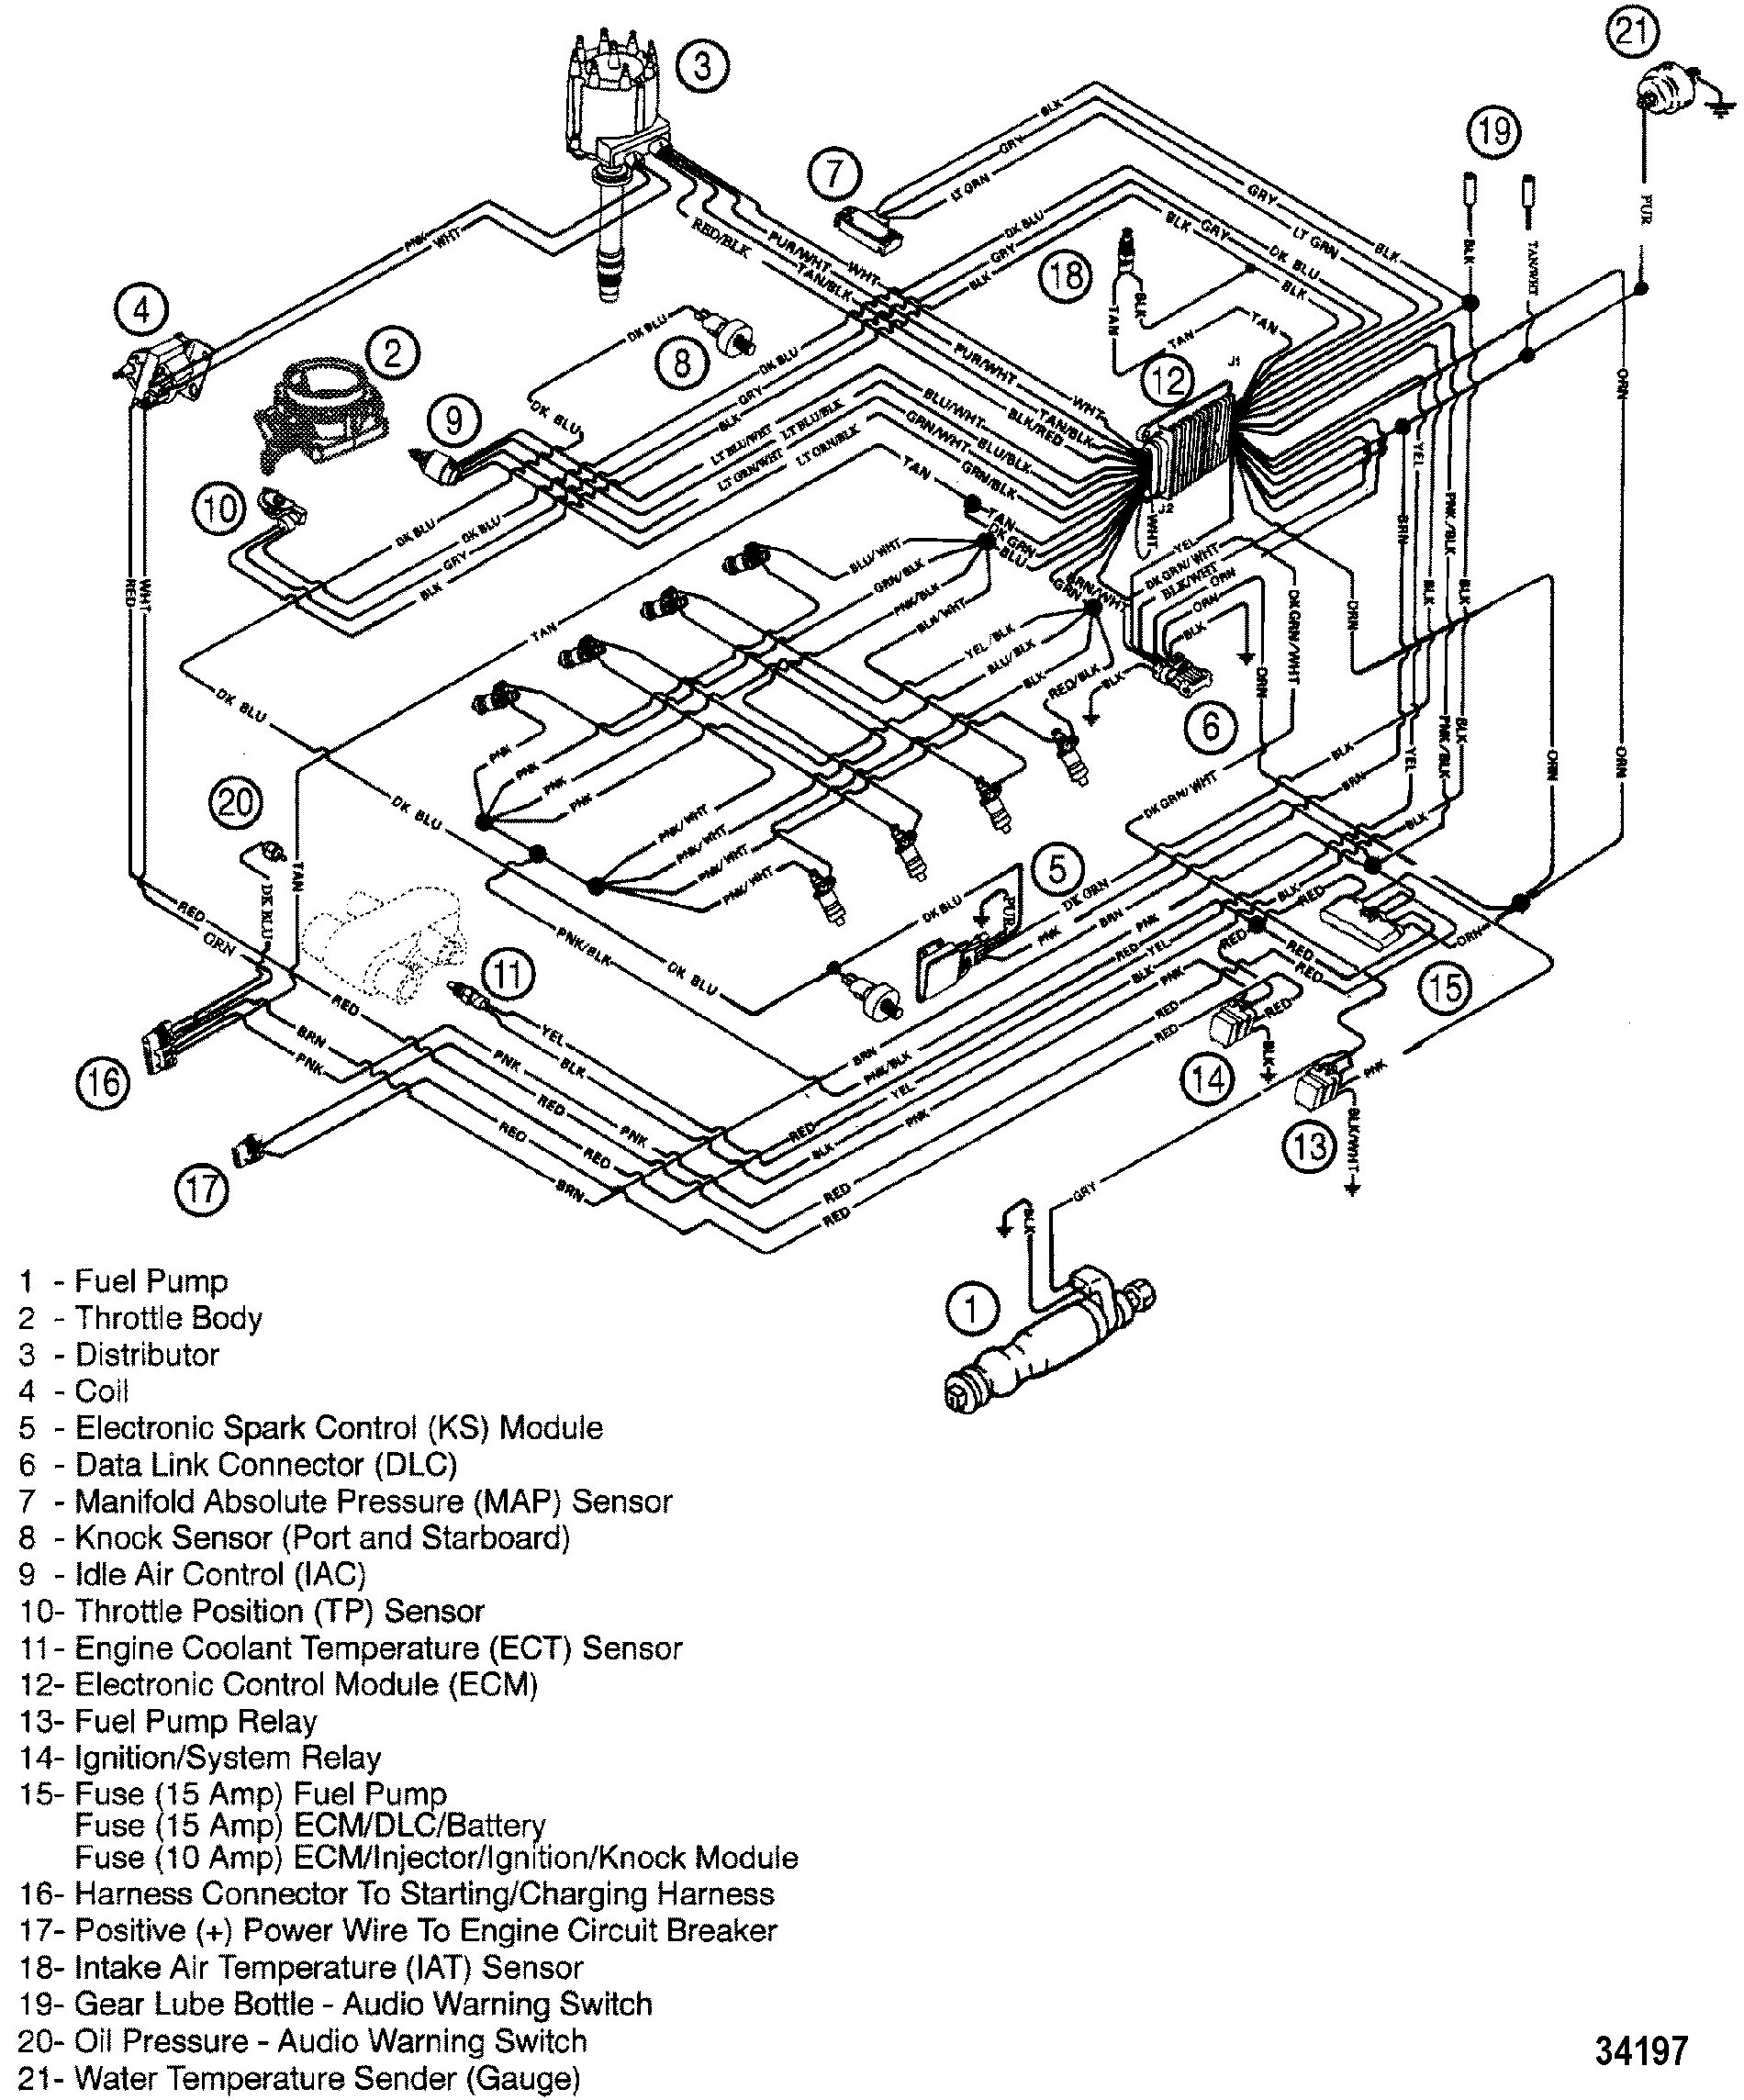 hight resolution of 3 0 mercruiser engine parts diagram wiring diagram portal rh 18 5 2 kaminari music de mercruiser 3 0 parts diagram mercruiser 3 0 parts diagram